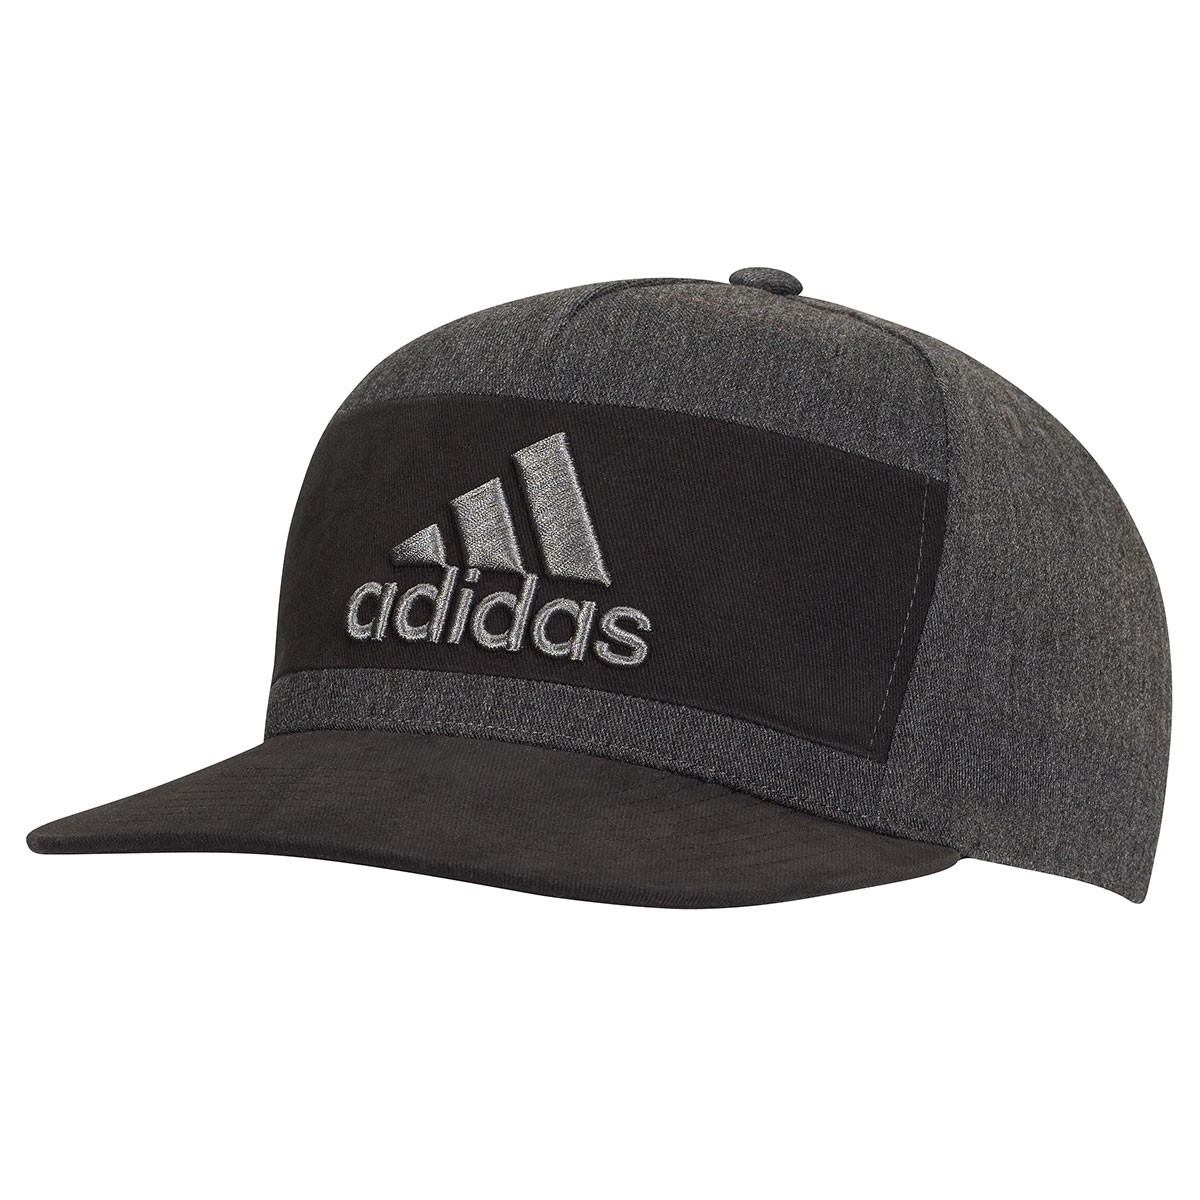 Adidas Golf 2017 Mens Heather Block Snapback Hat Cap 7f4b7d30ce11